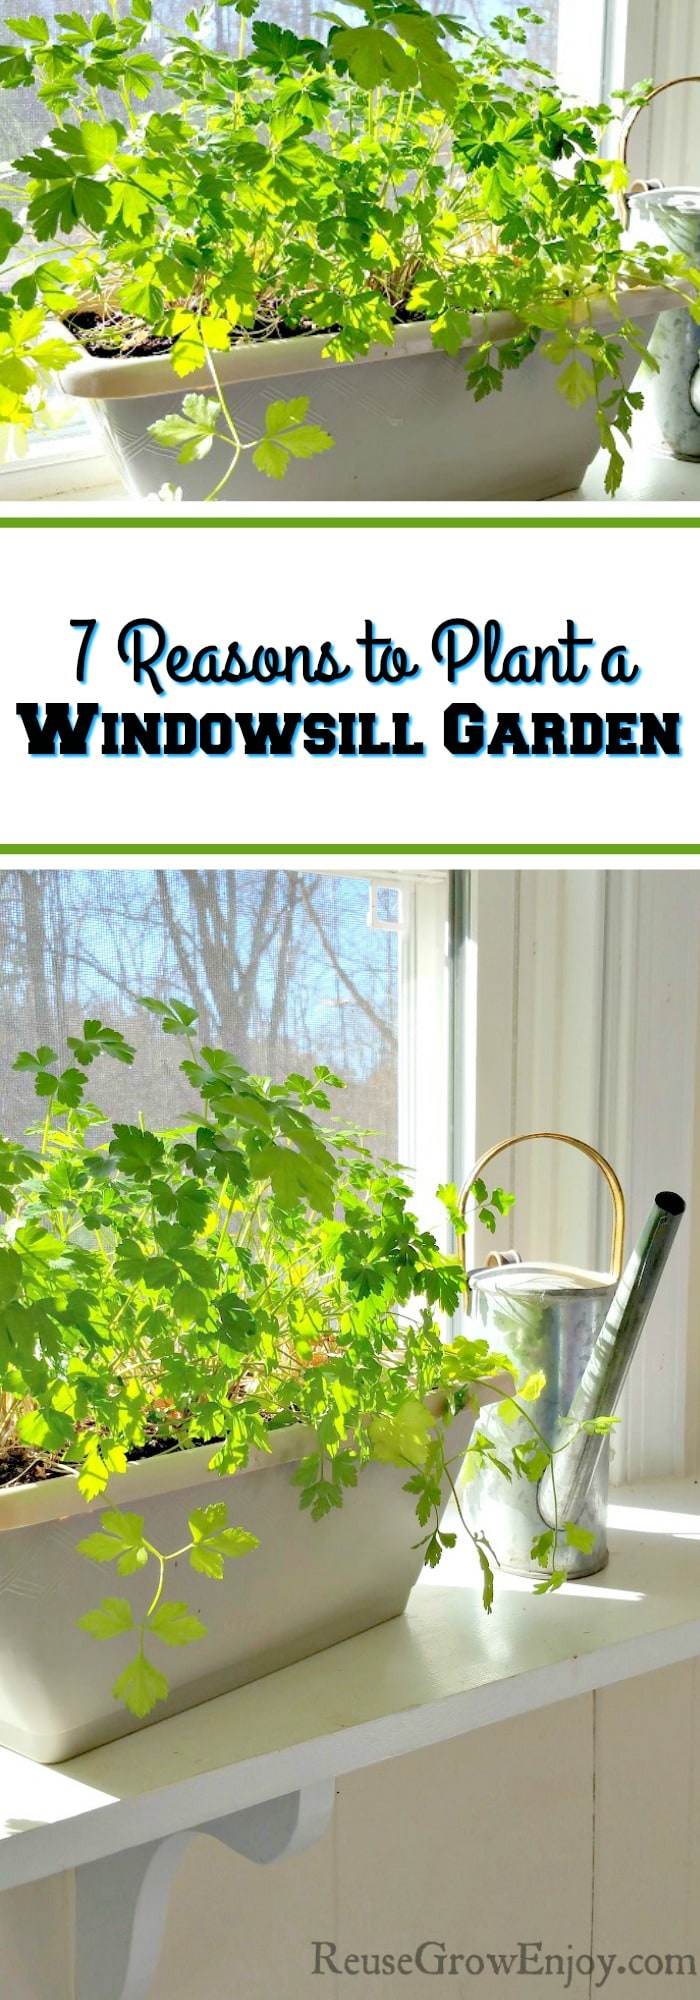 Think you don't have the time or space for a garden? Windowsill garden is the perfect solution to both of those growing issues! I am going to share 7 Reasons to Plant a Windowsill Garden!